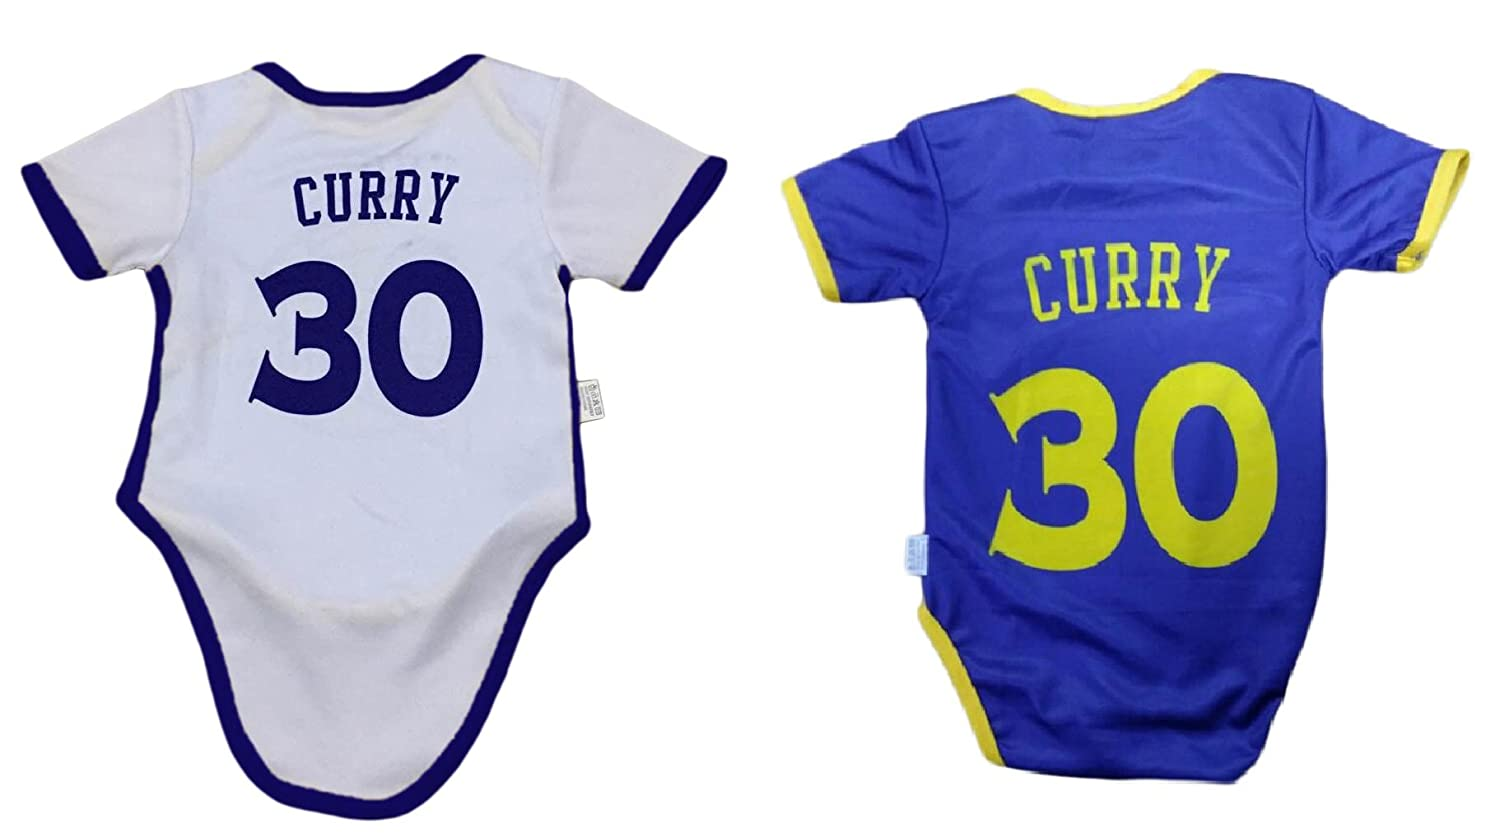 Amazon.com  iSport Gifts Steph Curry Basketball Jersey Baby Infant    Toddler Onesies Rompers Pack of 2 Home   Away Jersey Design Bundle  Sports    Outdoors 0460a3dbb